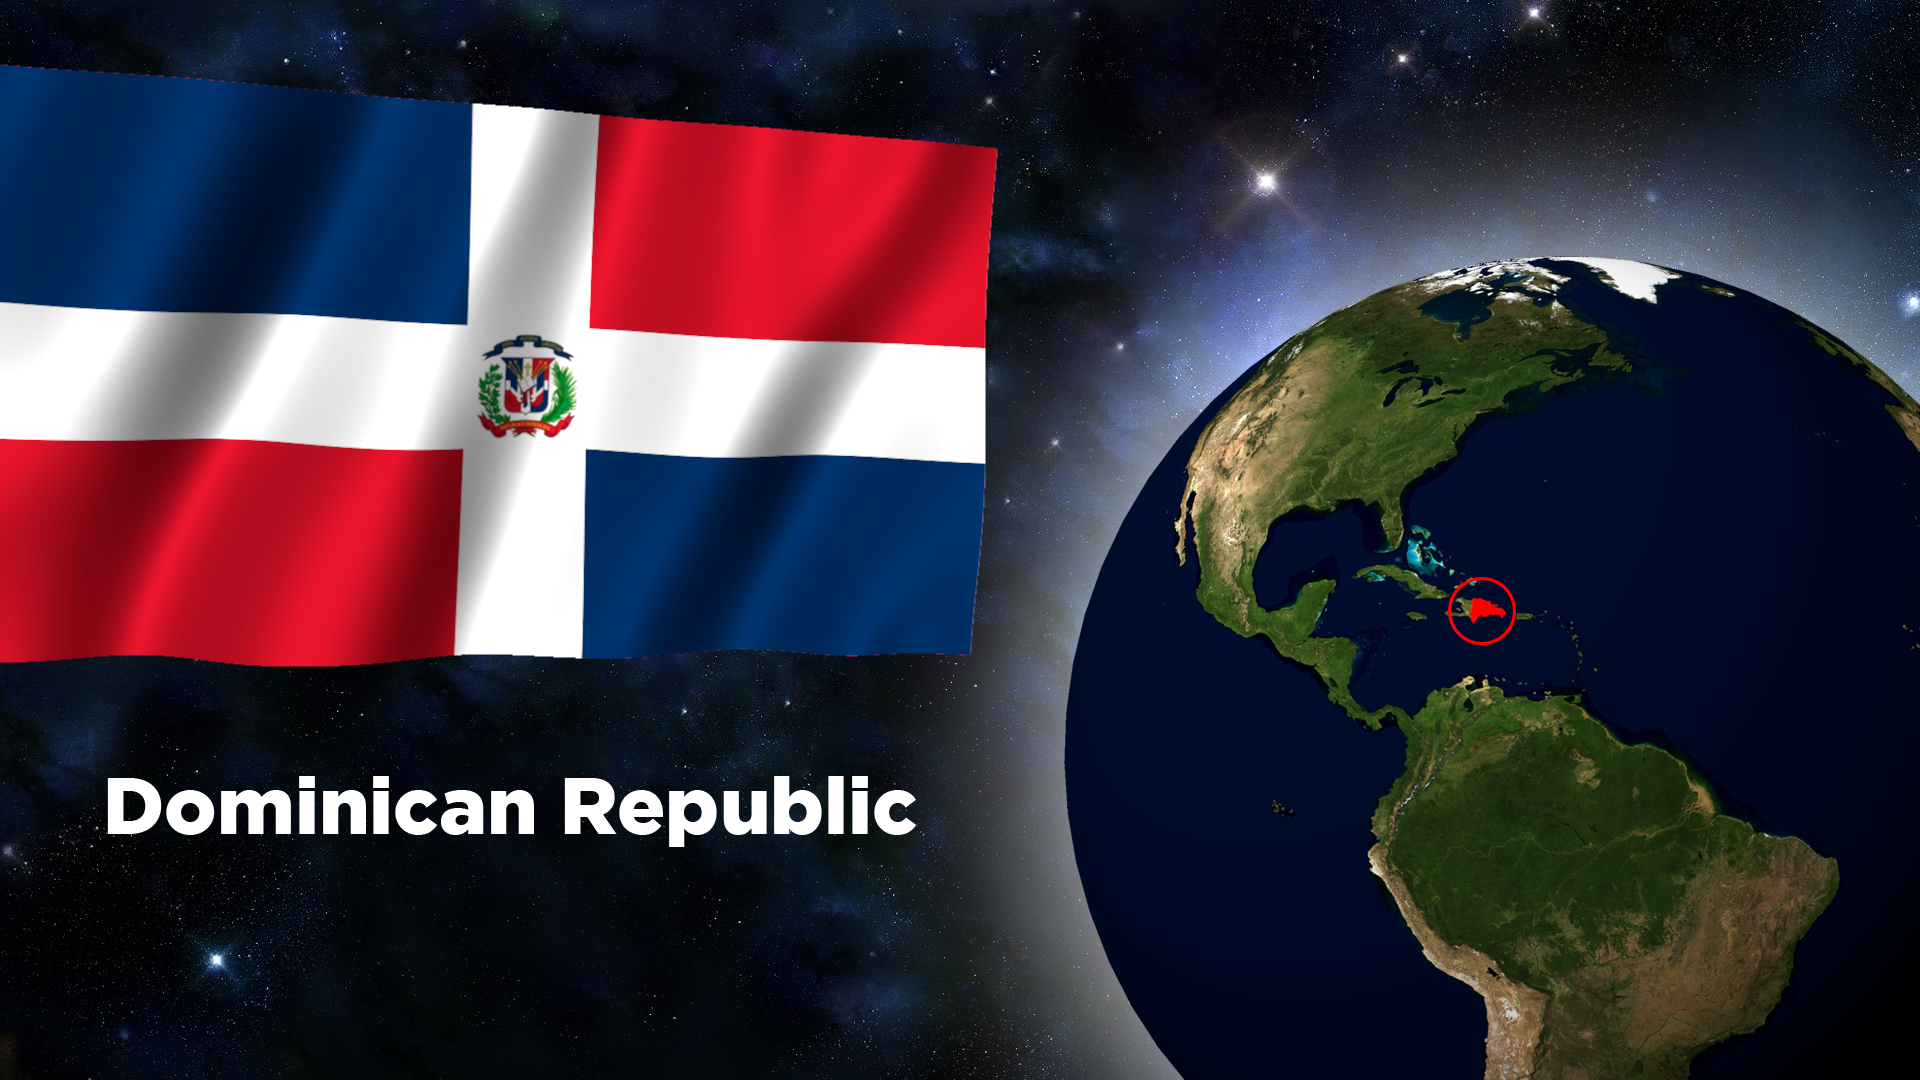 Flag Wallpaper - Dominican Republic by